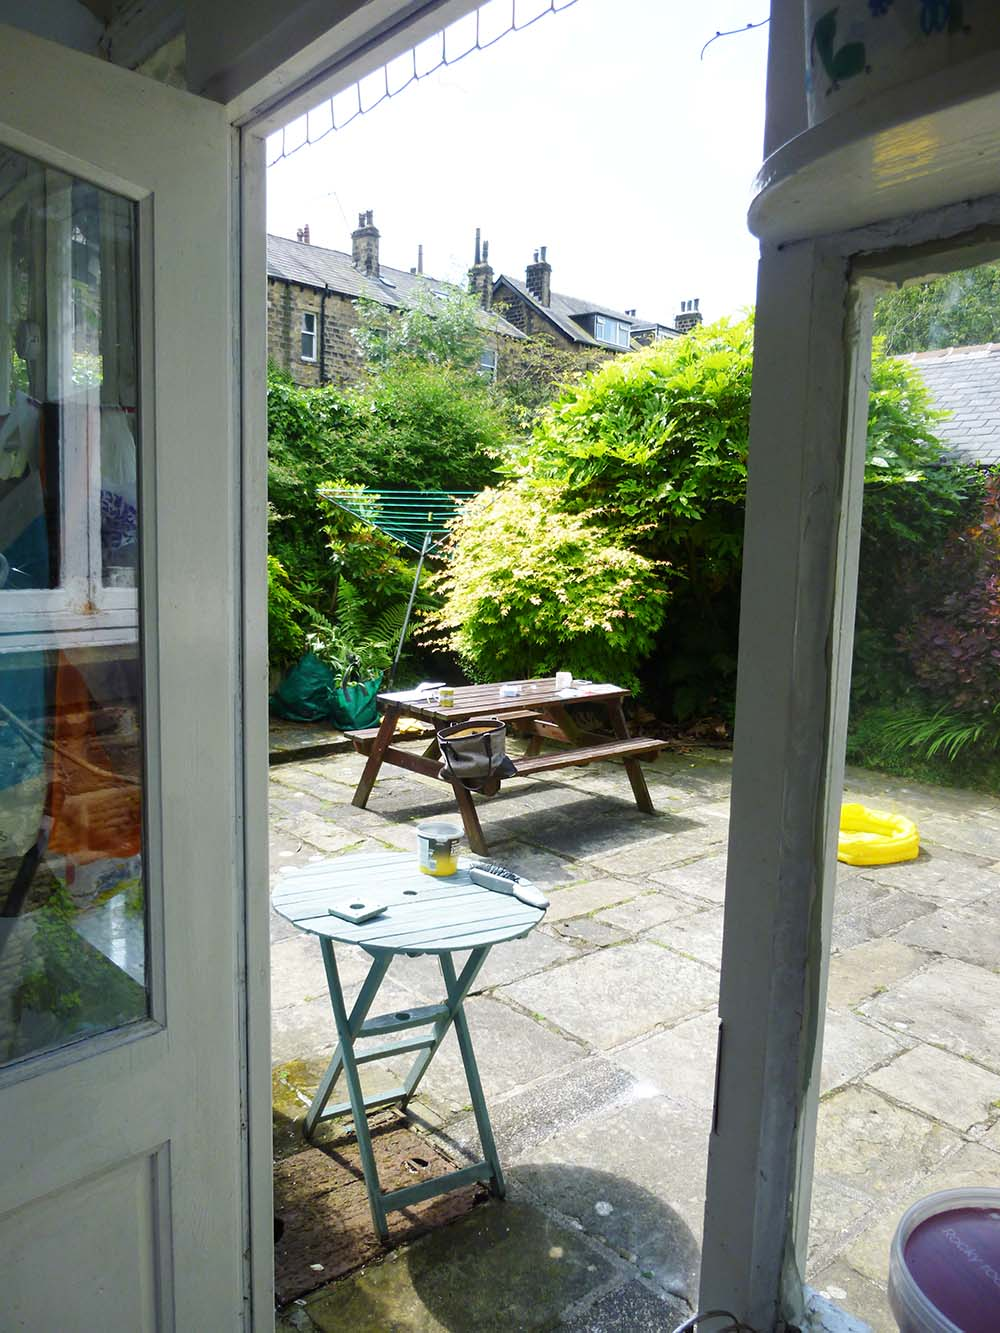 BEFORE:   View into the sunny flagged yard from the original back kitchen door.